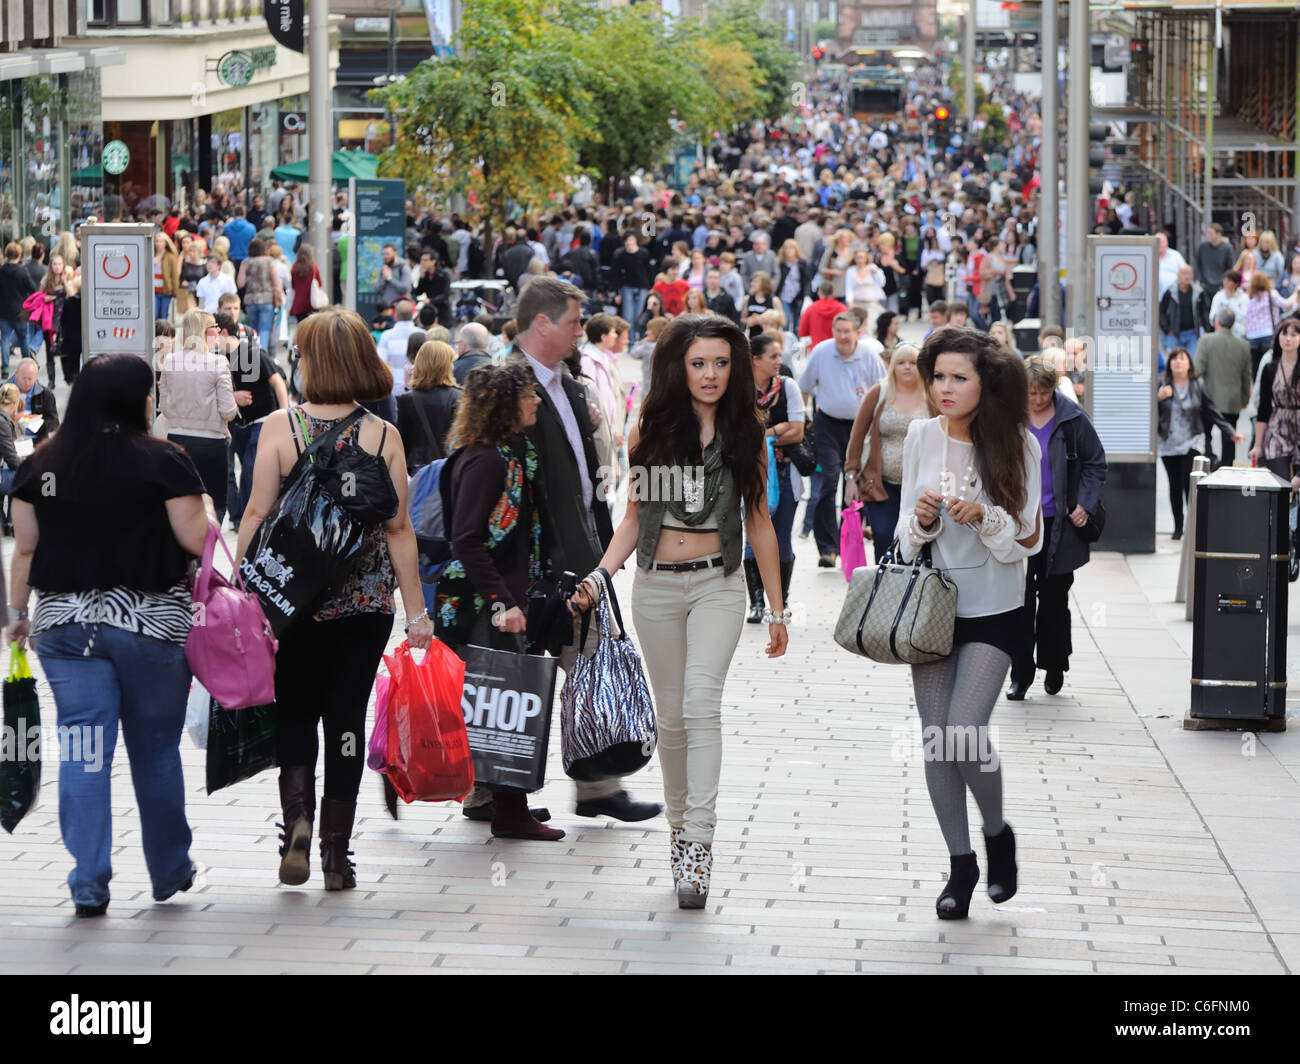 Busy street in Glasgow city centre Scotland. People shopping. Stock Photo